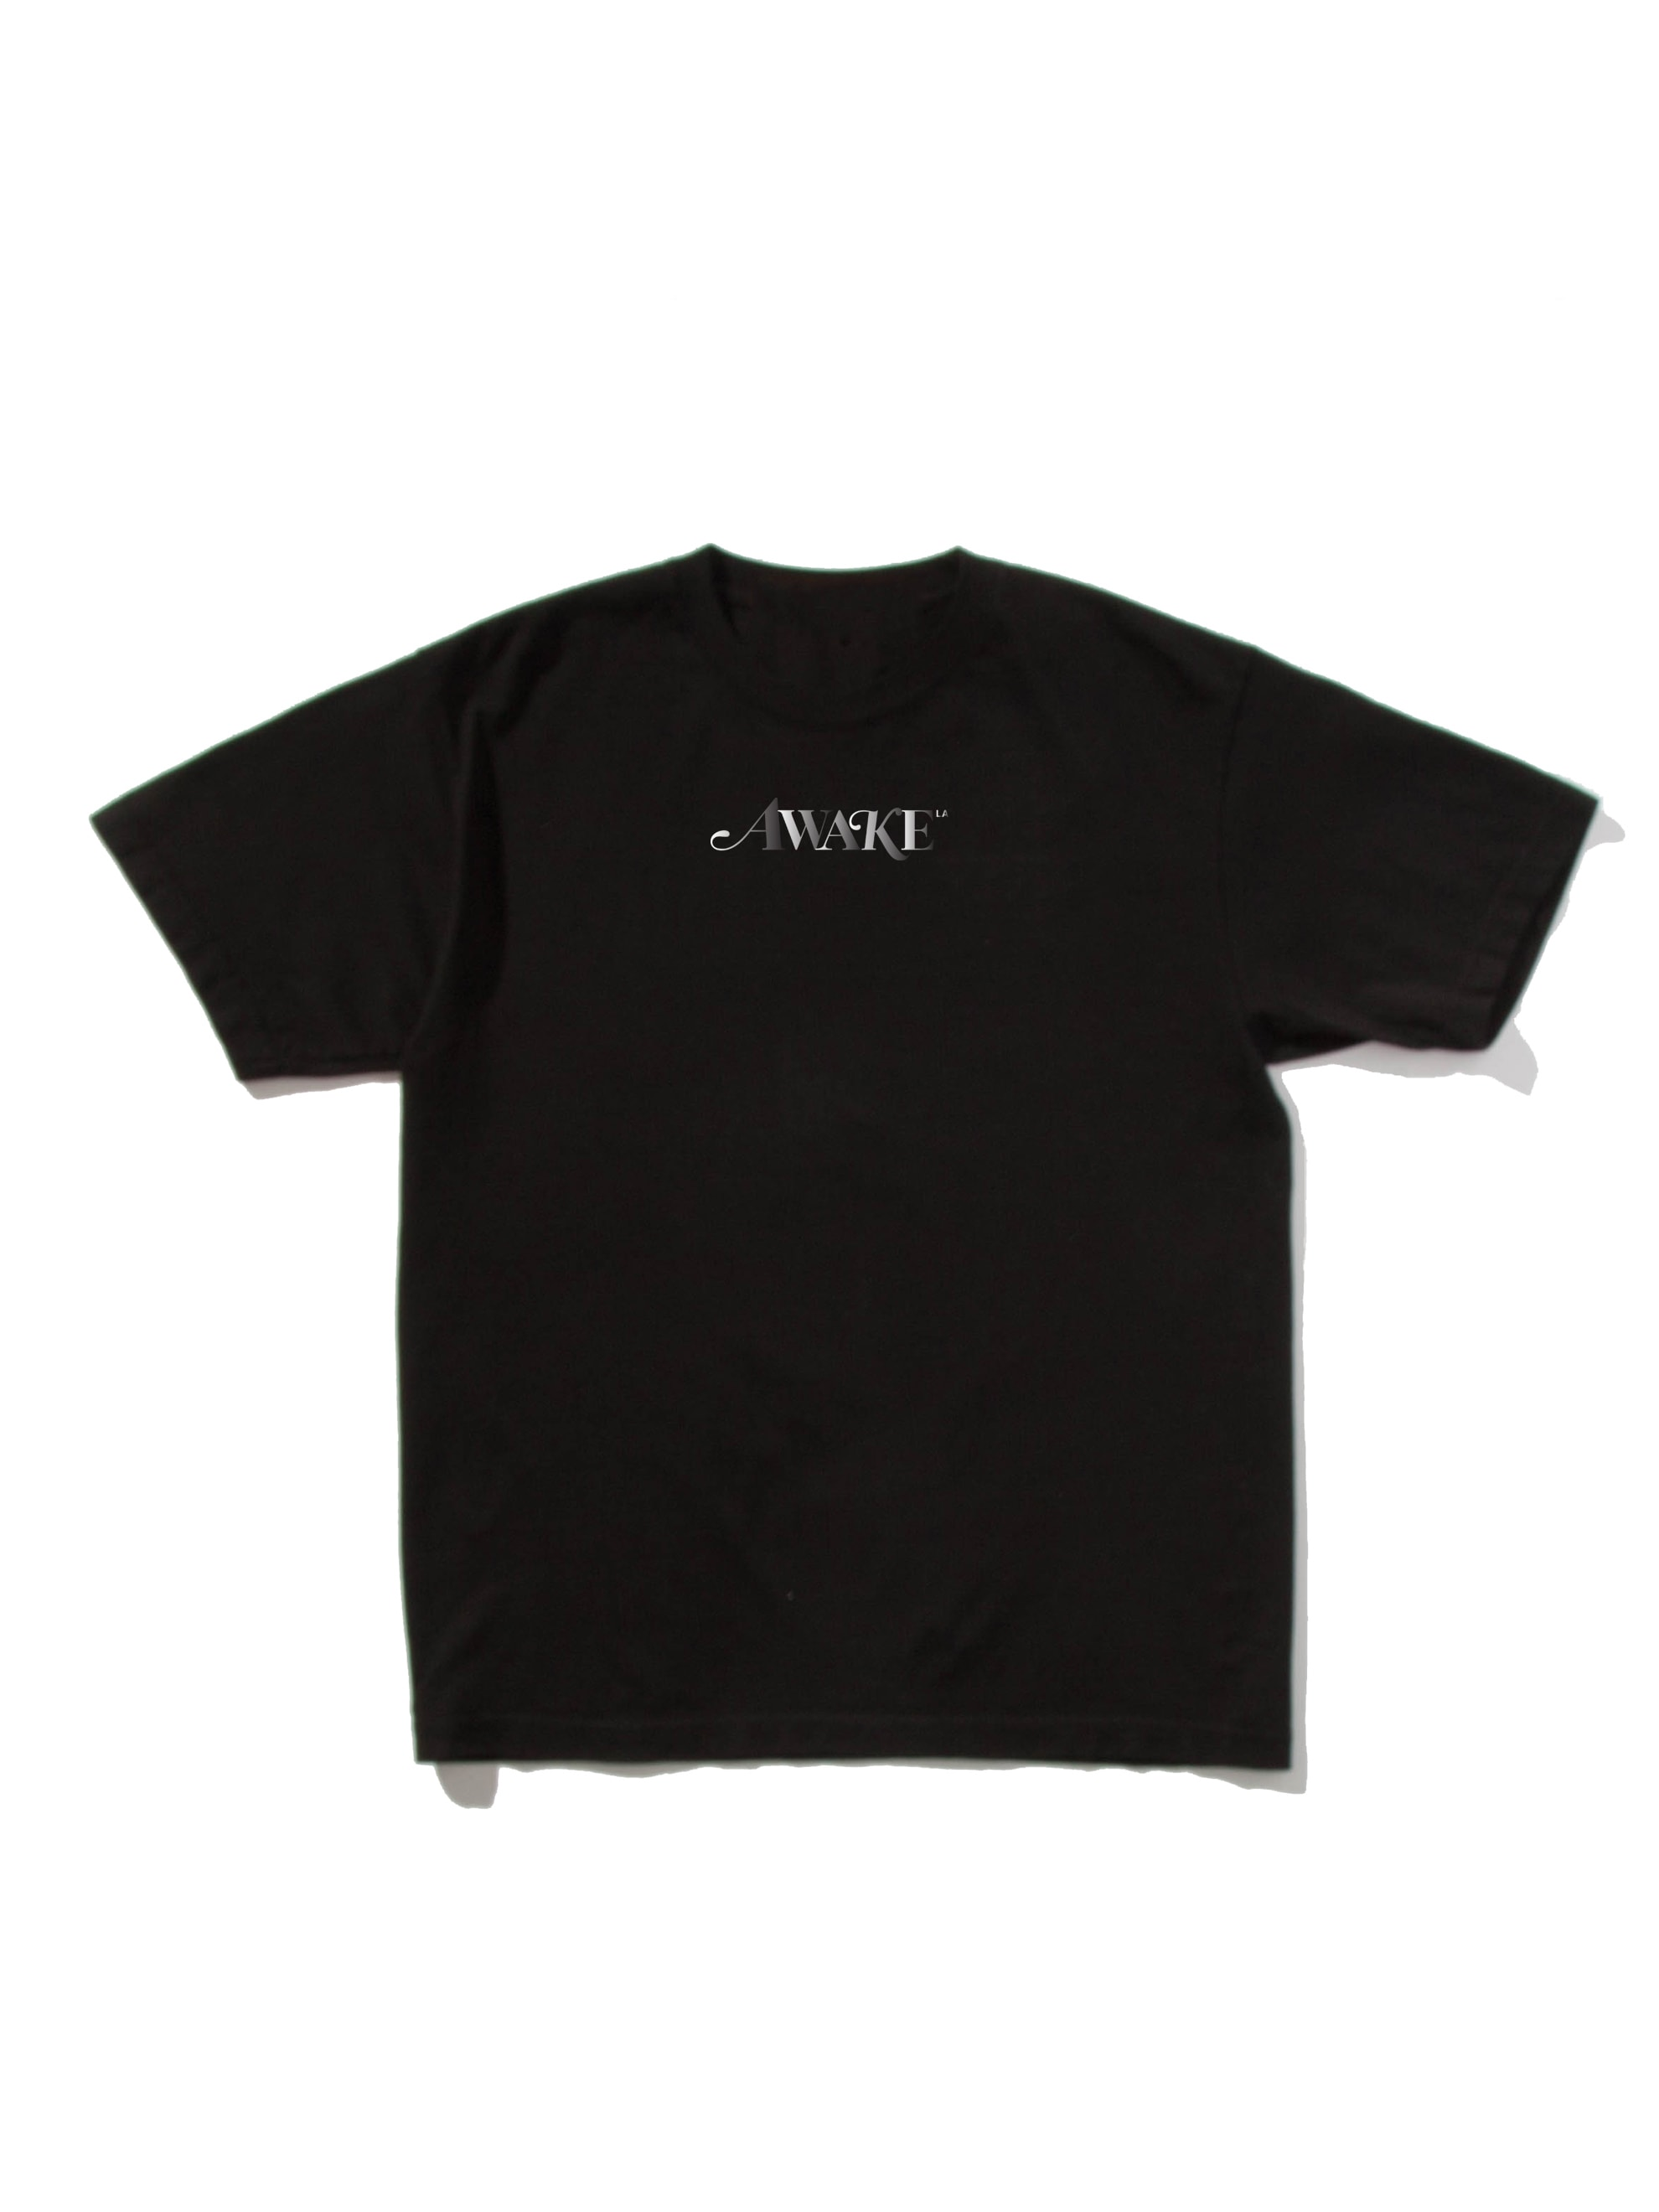 Union x AWAKE T-shirt